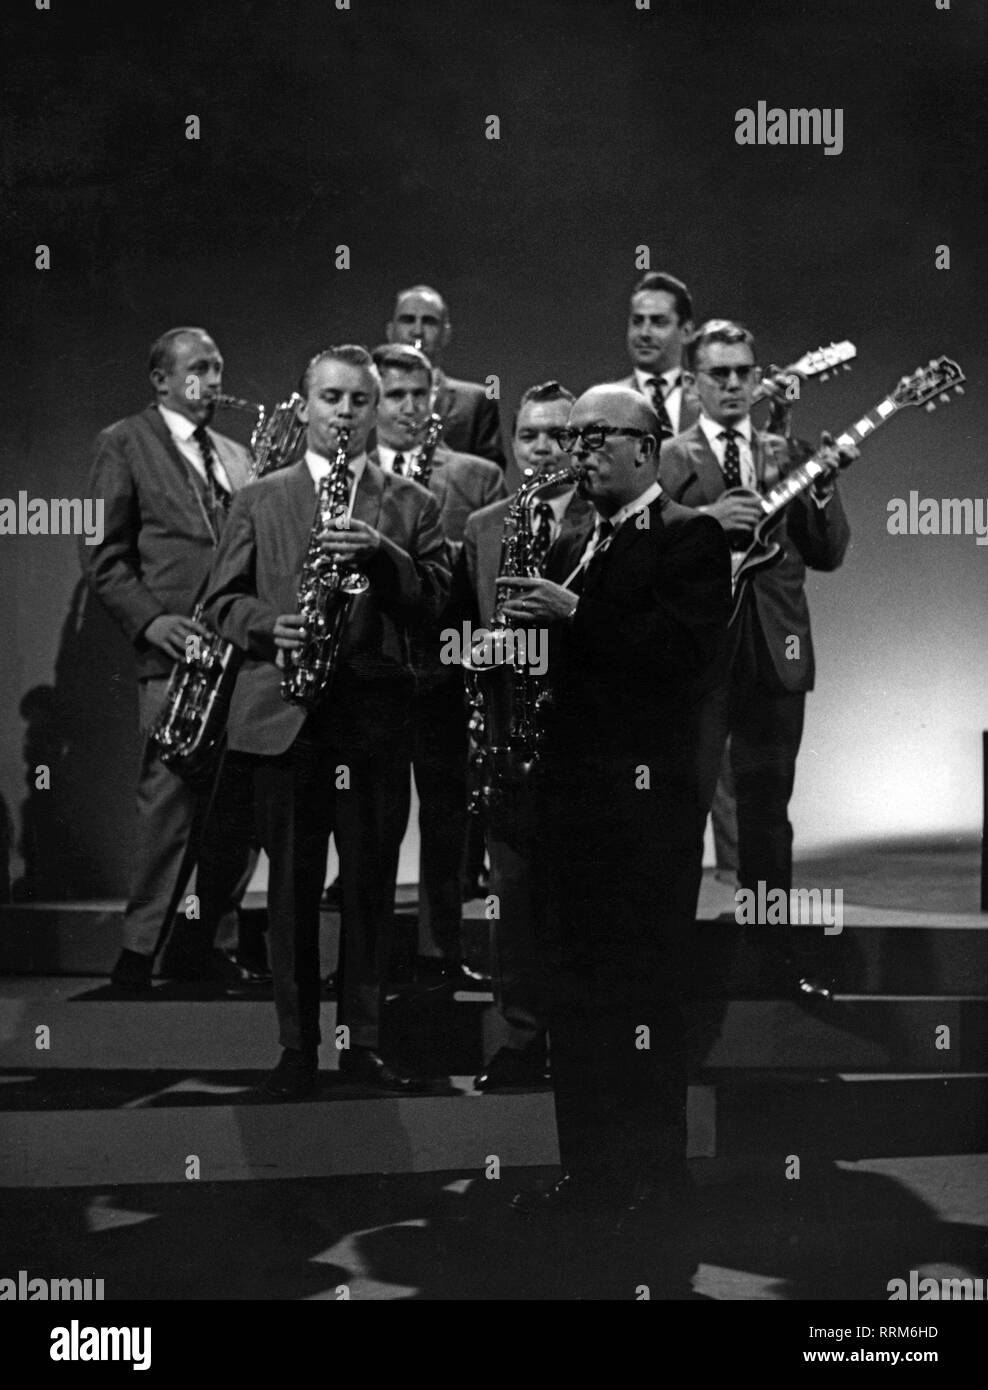 Vaughn, Billy, 12.4.1919 - 26.9.1991, American musician and singer, full length, with his orchestra, stage performance, 1960s, Additional-Rights-Clearance-Info-Not-Available - Stock Image